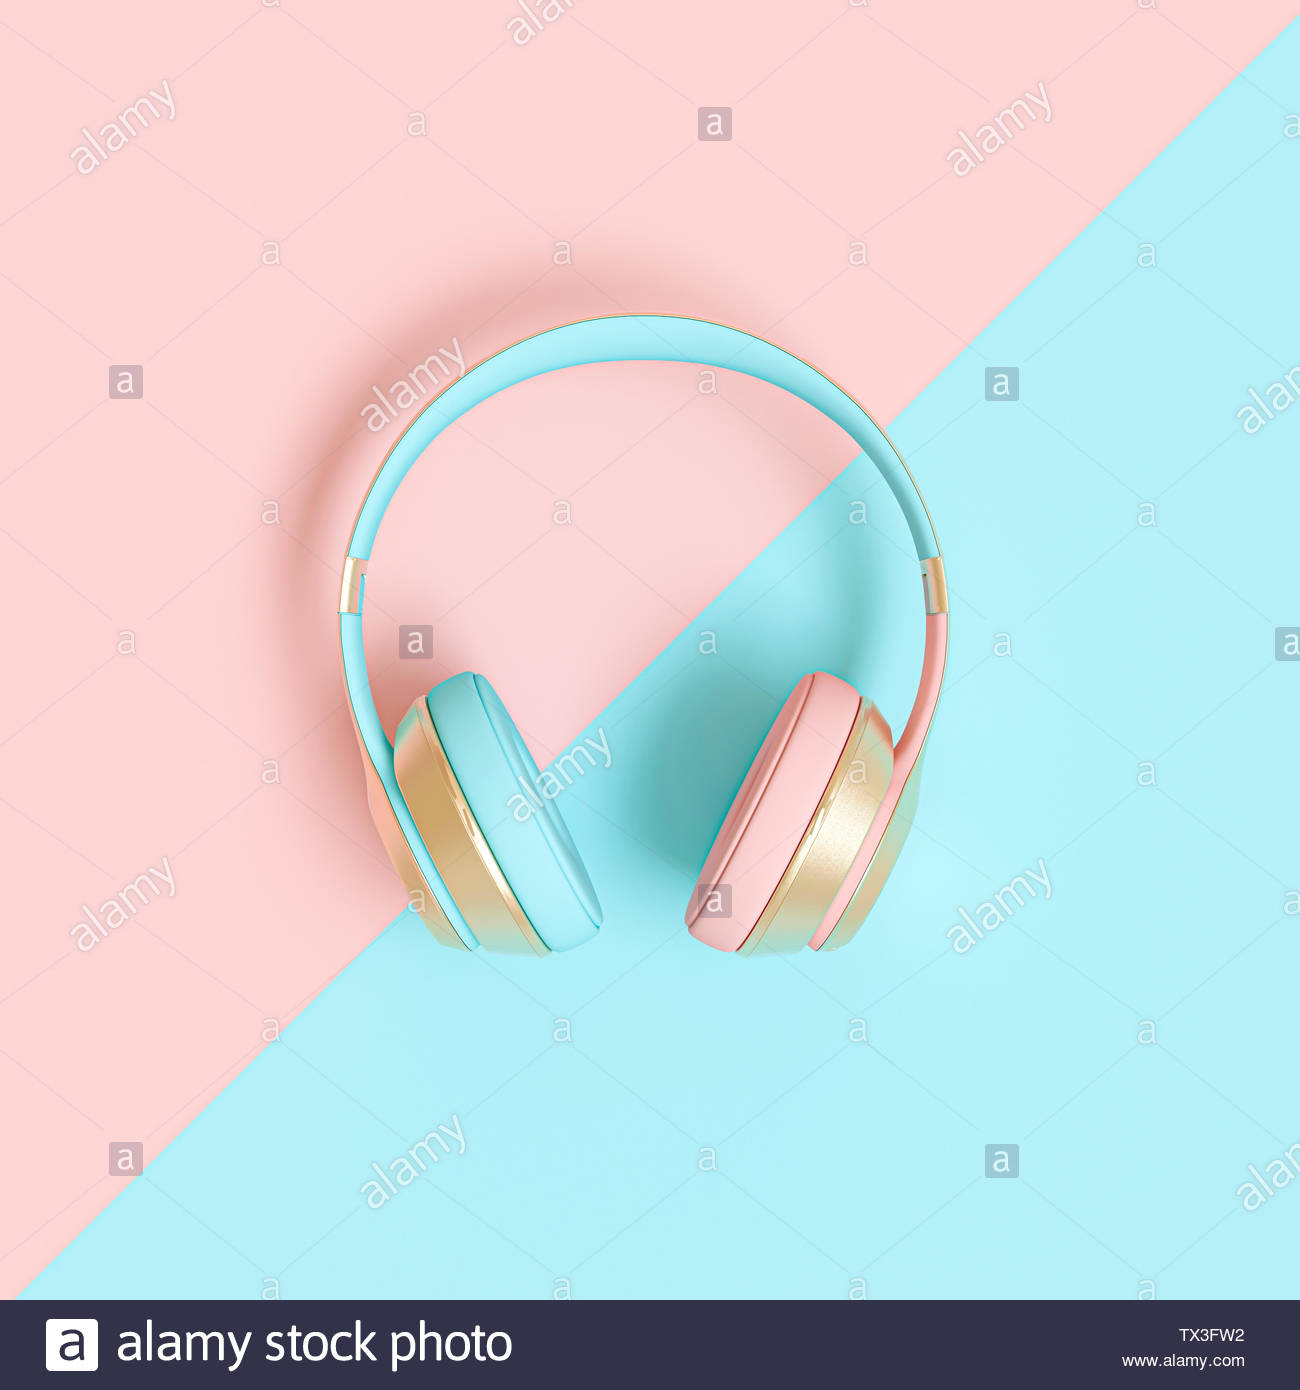 audio headphone 3d render image in pink and blue coloration du bi 1300x1390